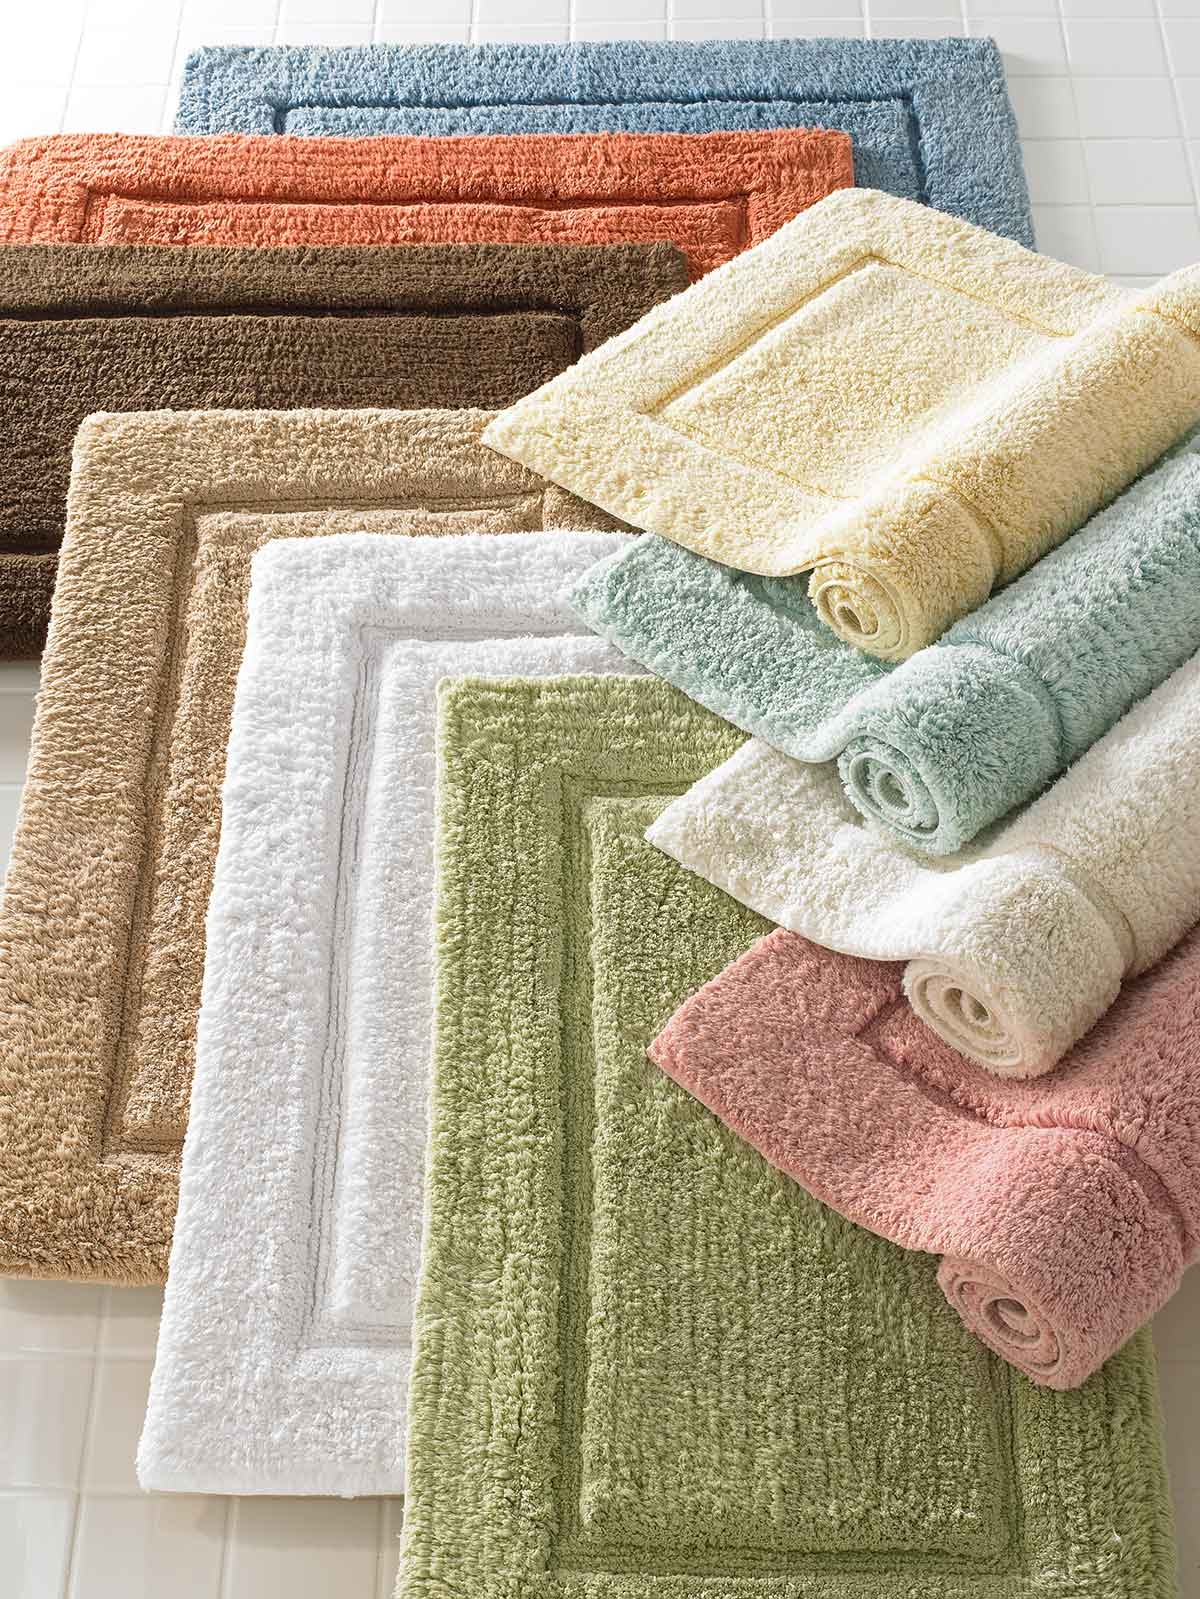 Permalink to Large Bathroom Rugs Cotton